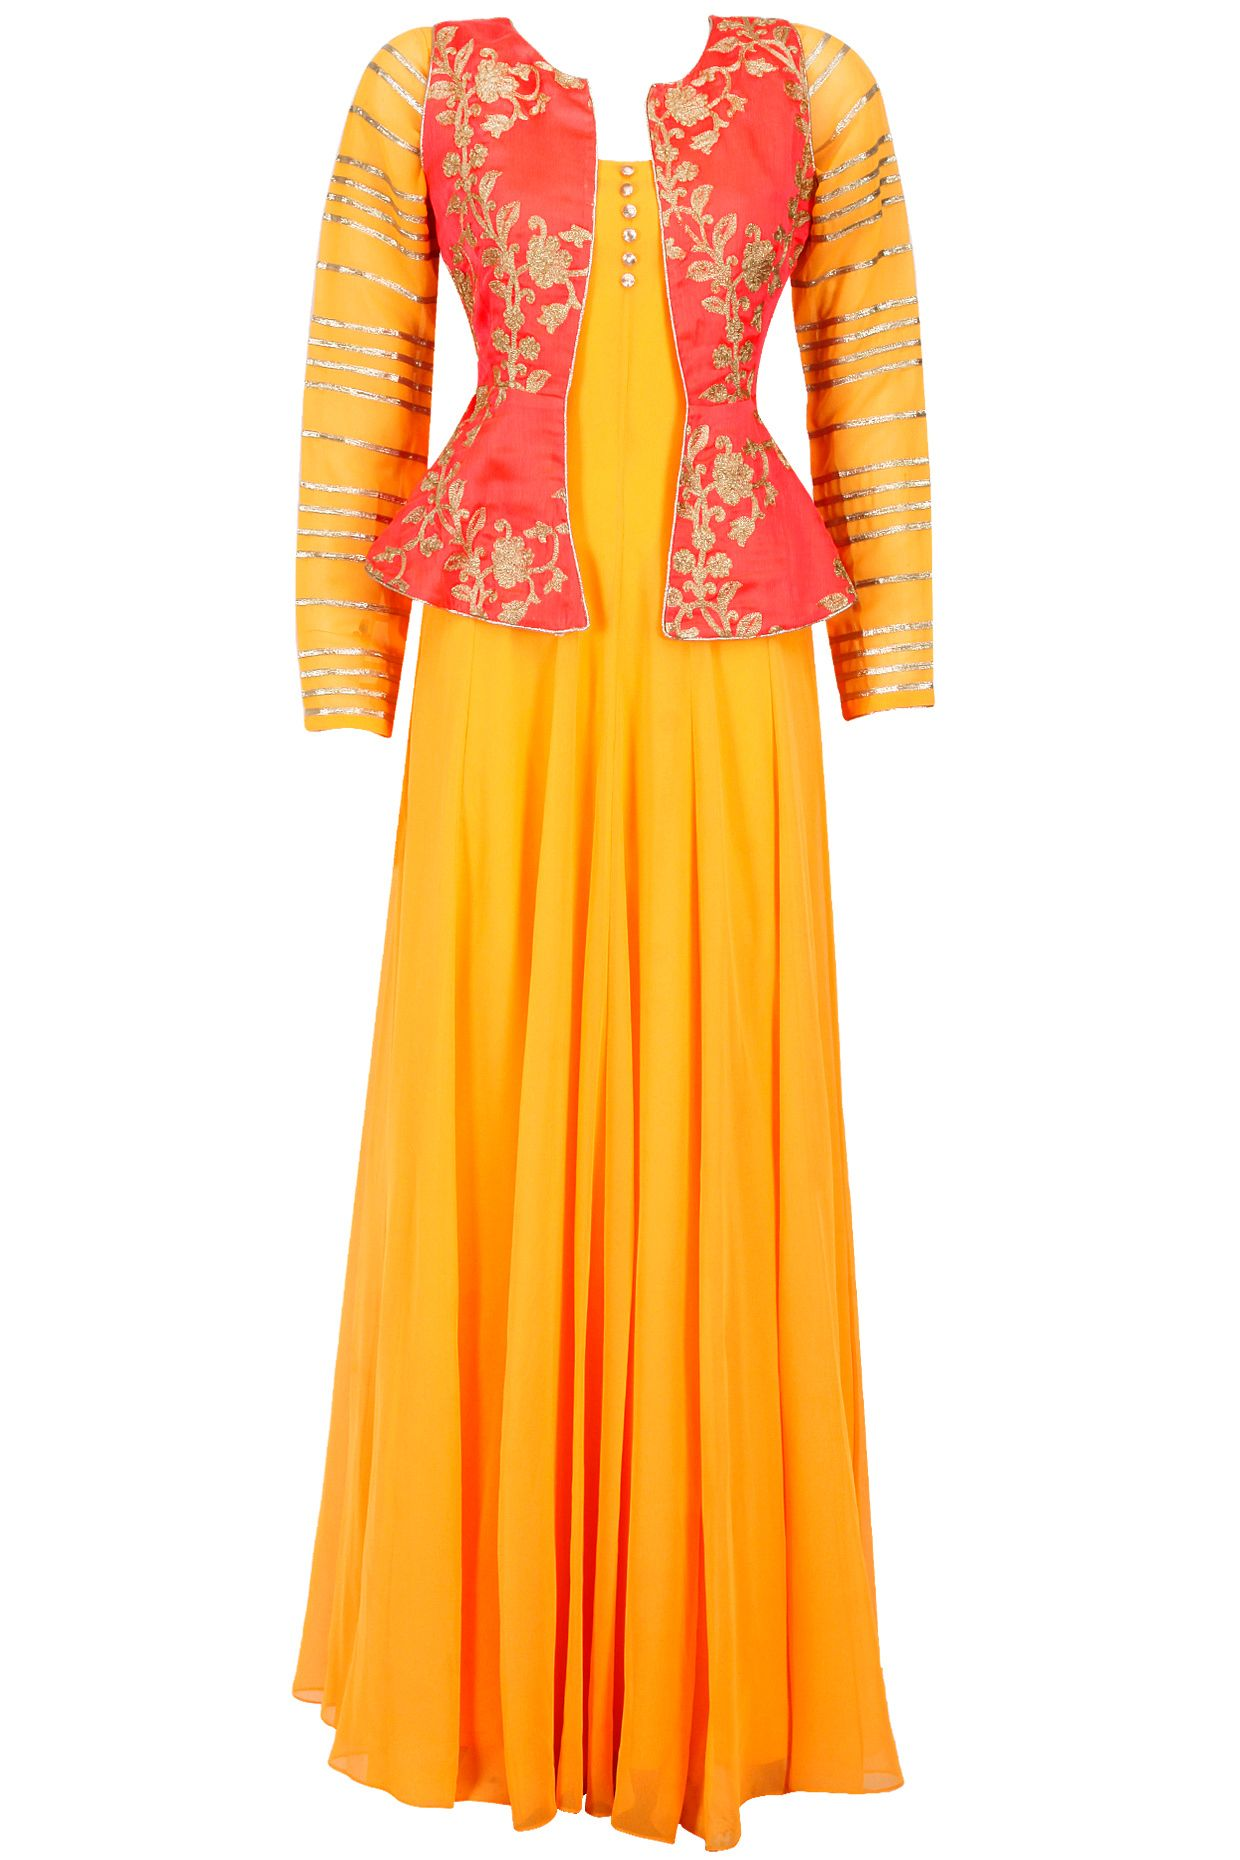 Neon coral embroidered koti with mango yellow gown available only at